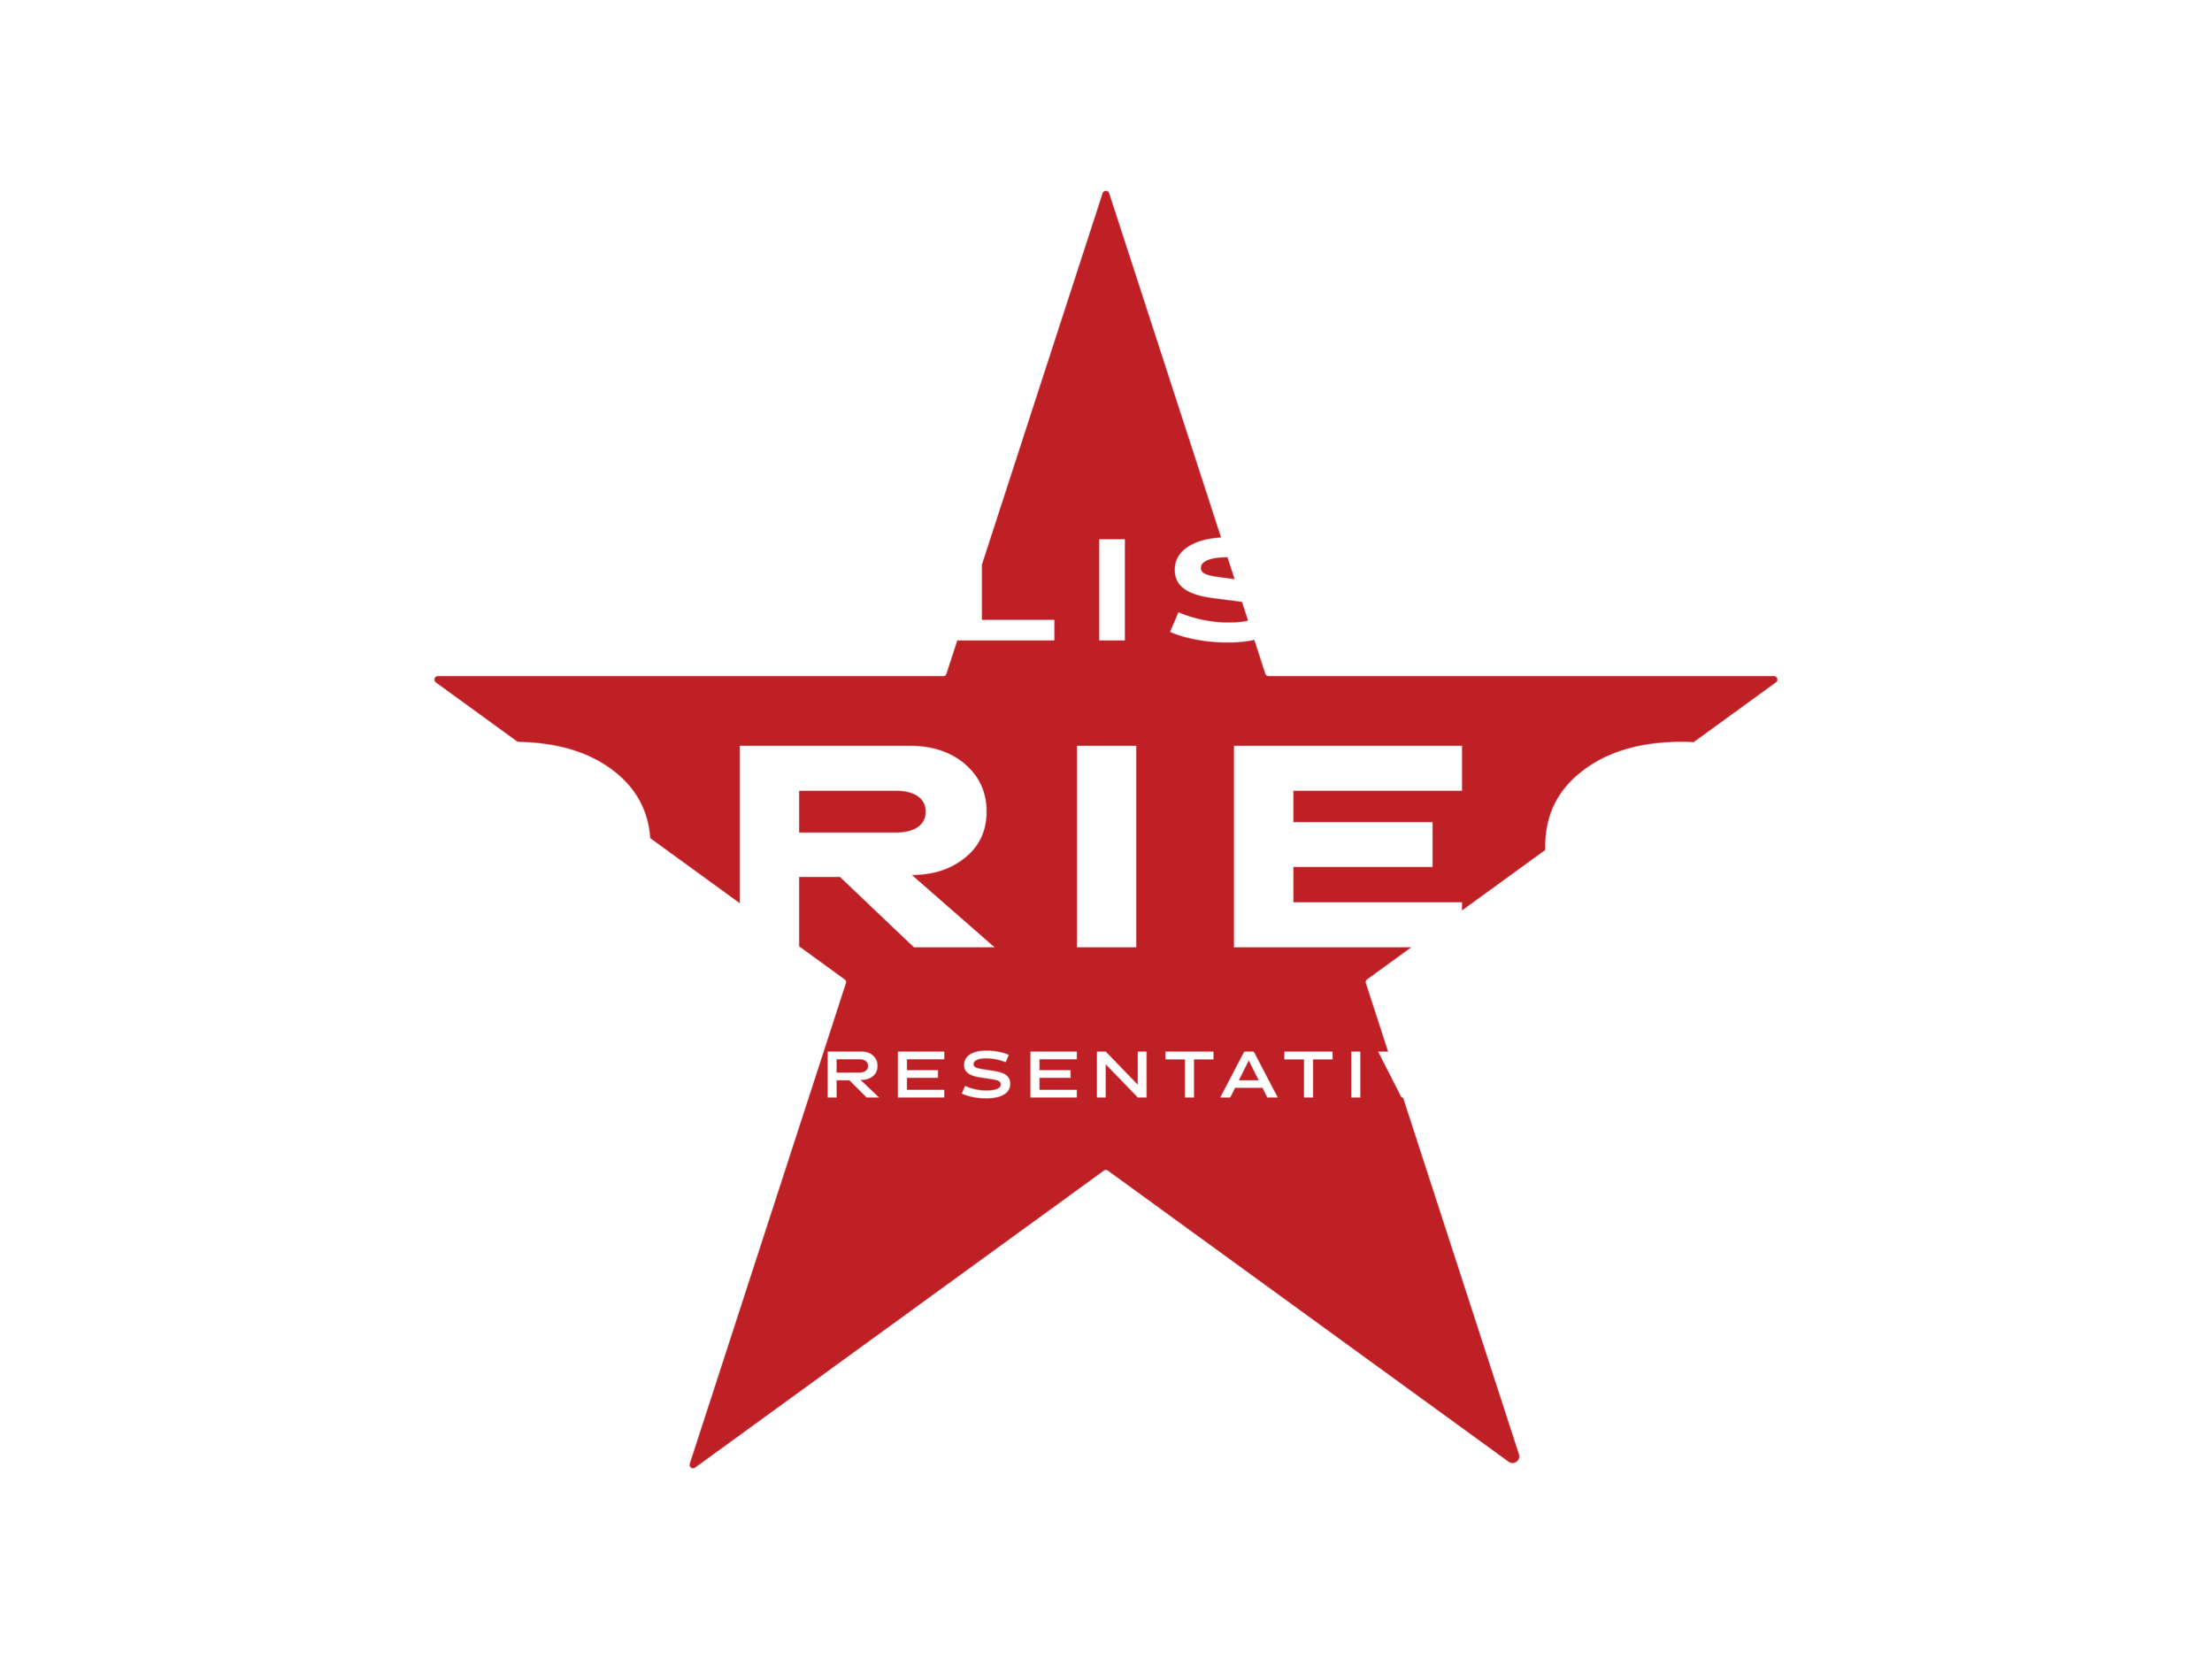 melissa noriega for state representative district 145 houston texas